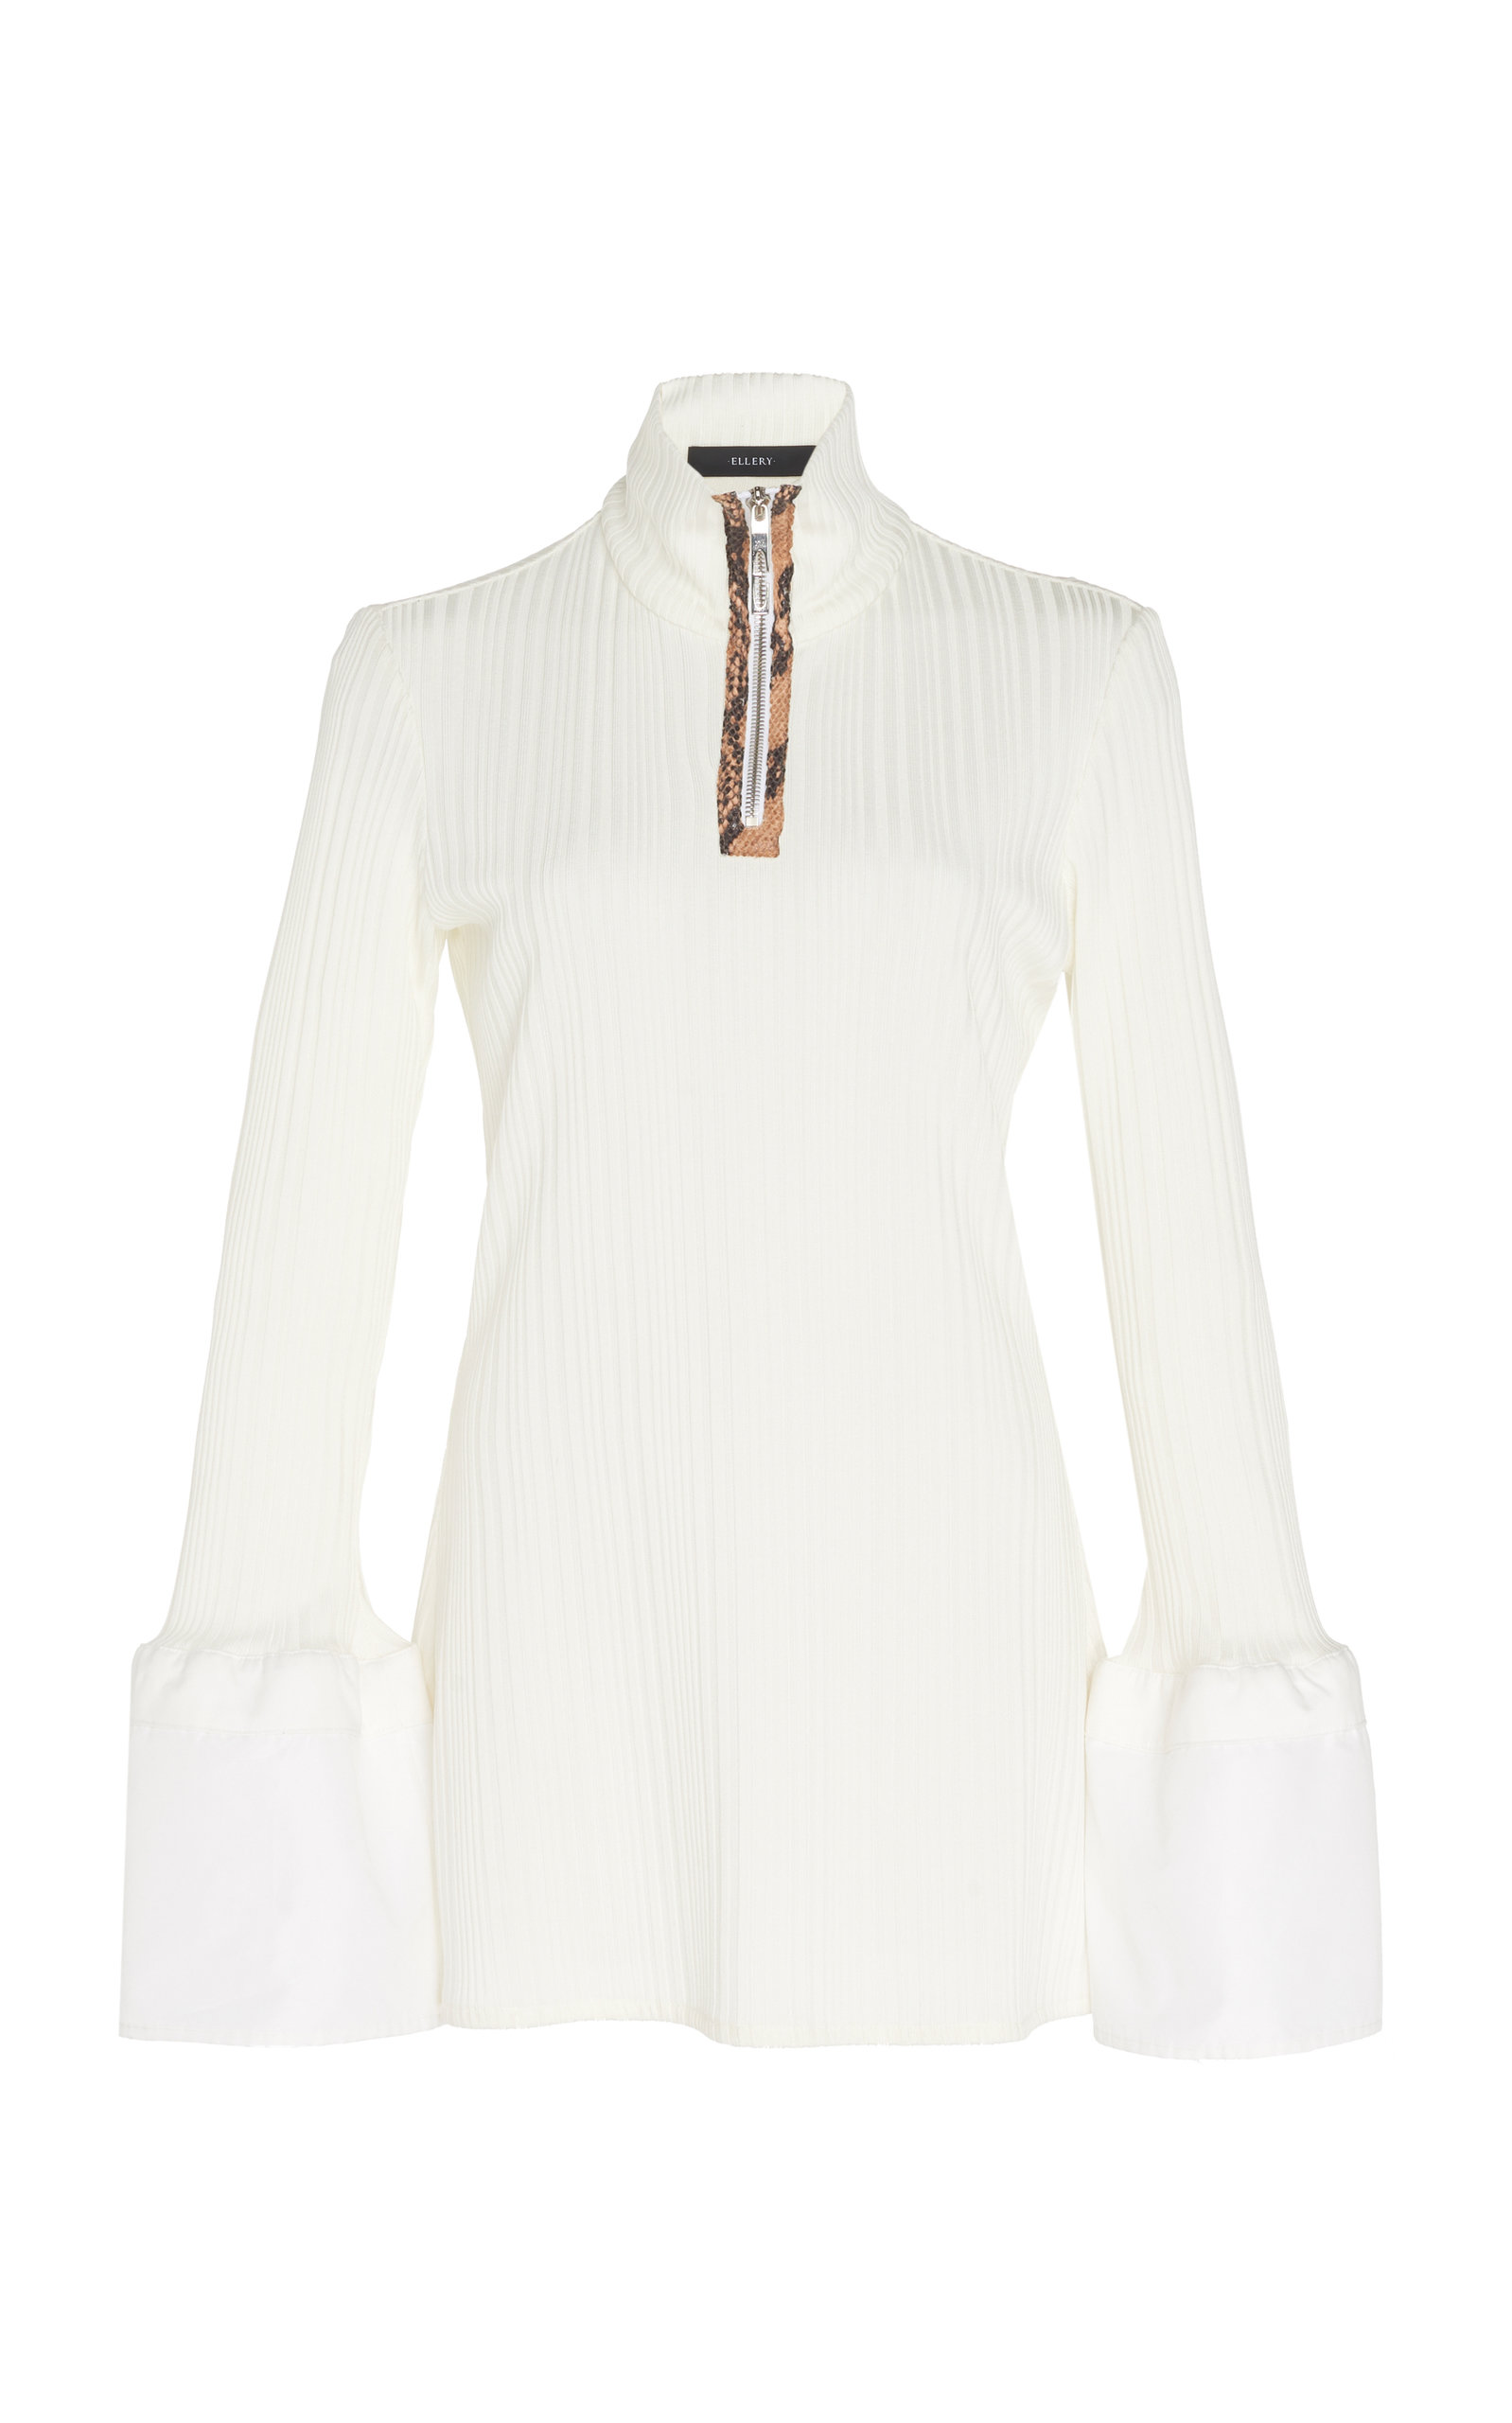 Ellery Knits Arcade Zip-Detailed Ribbed Knit Top